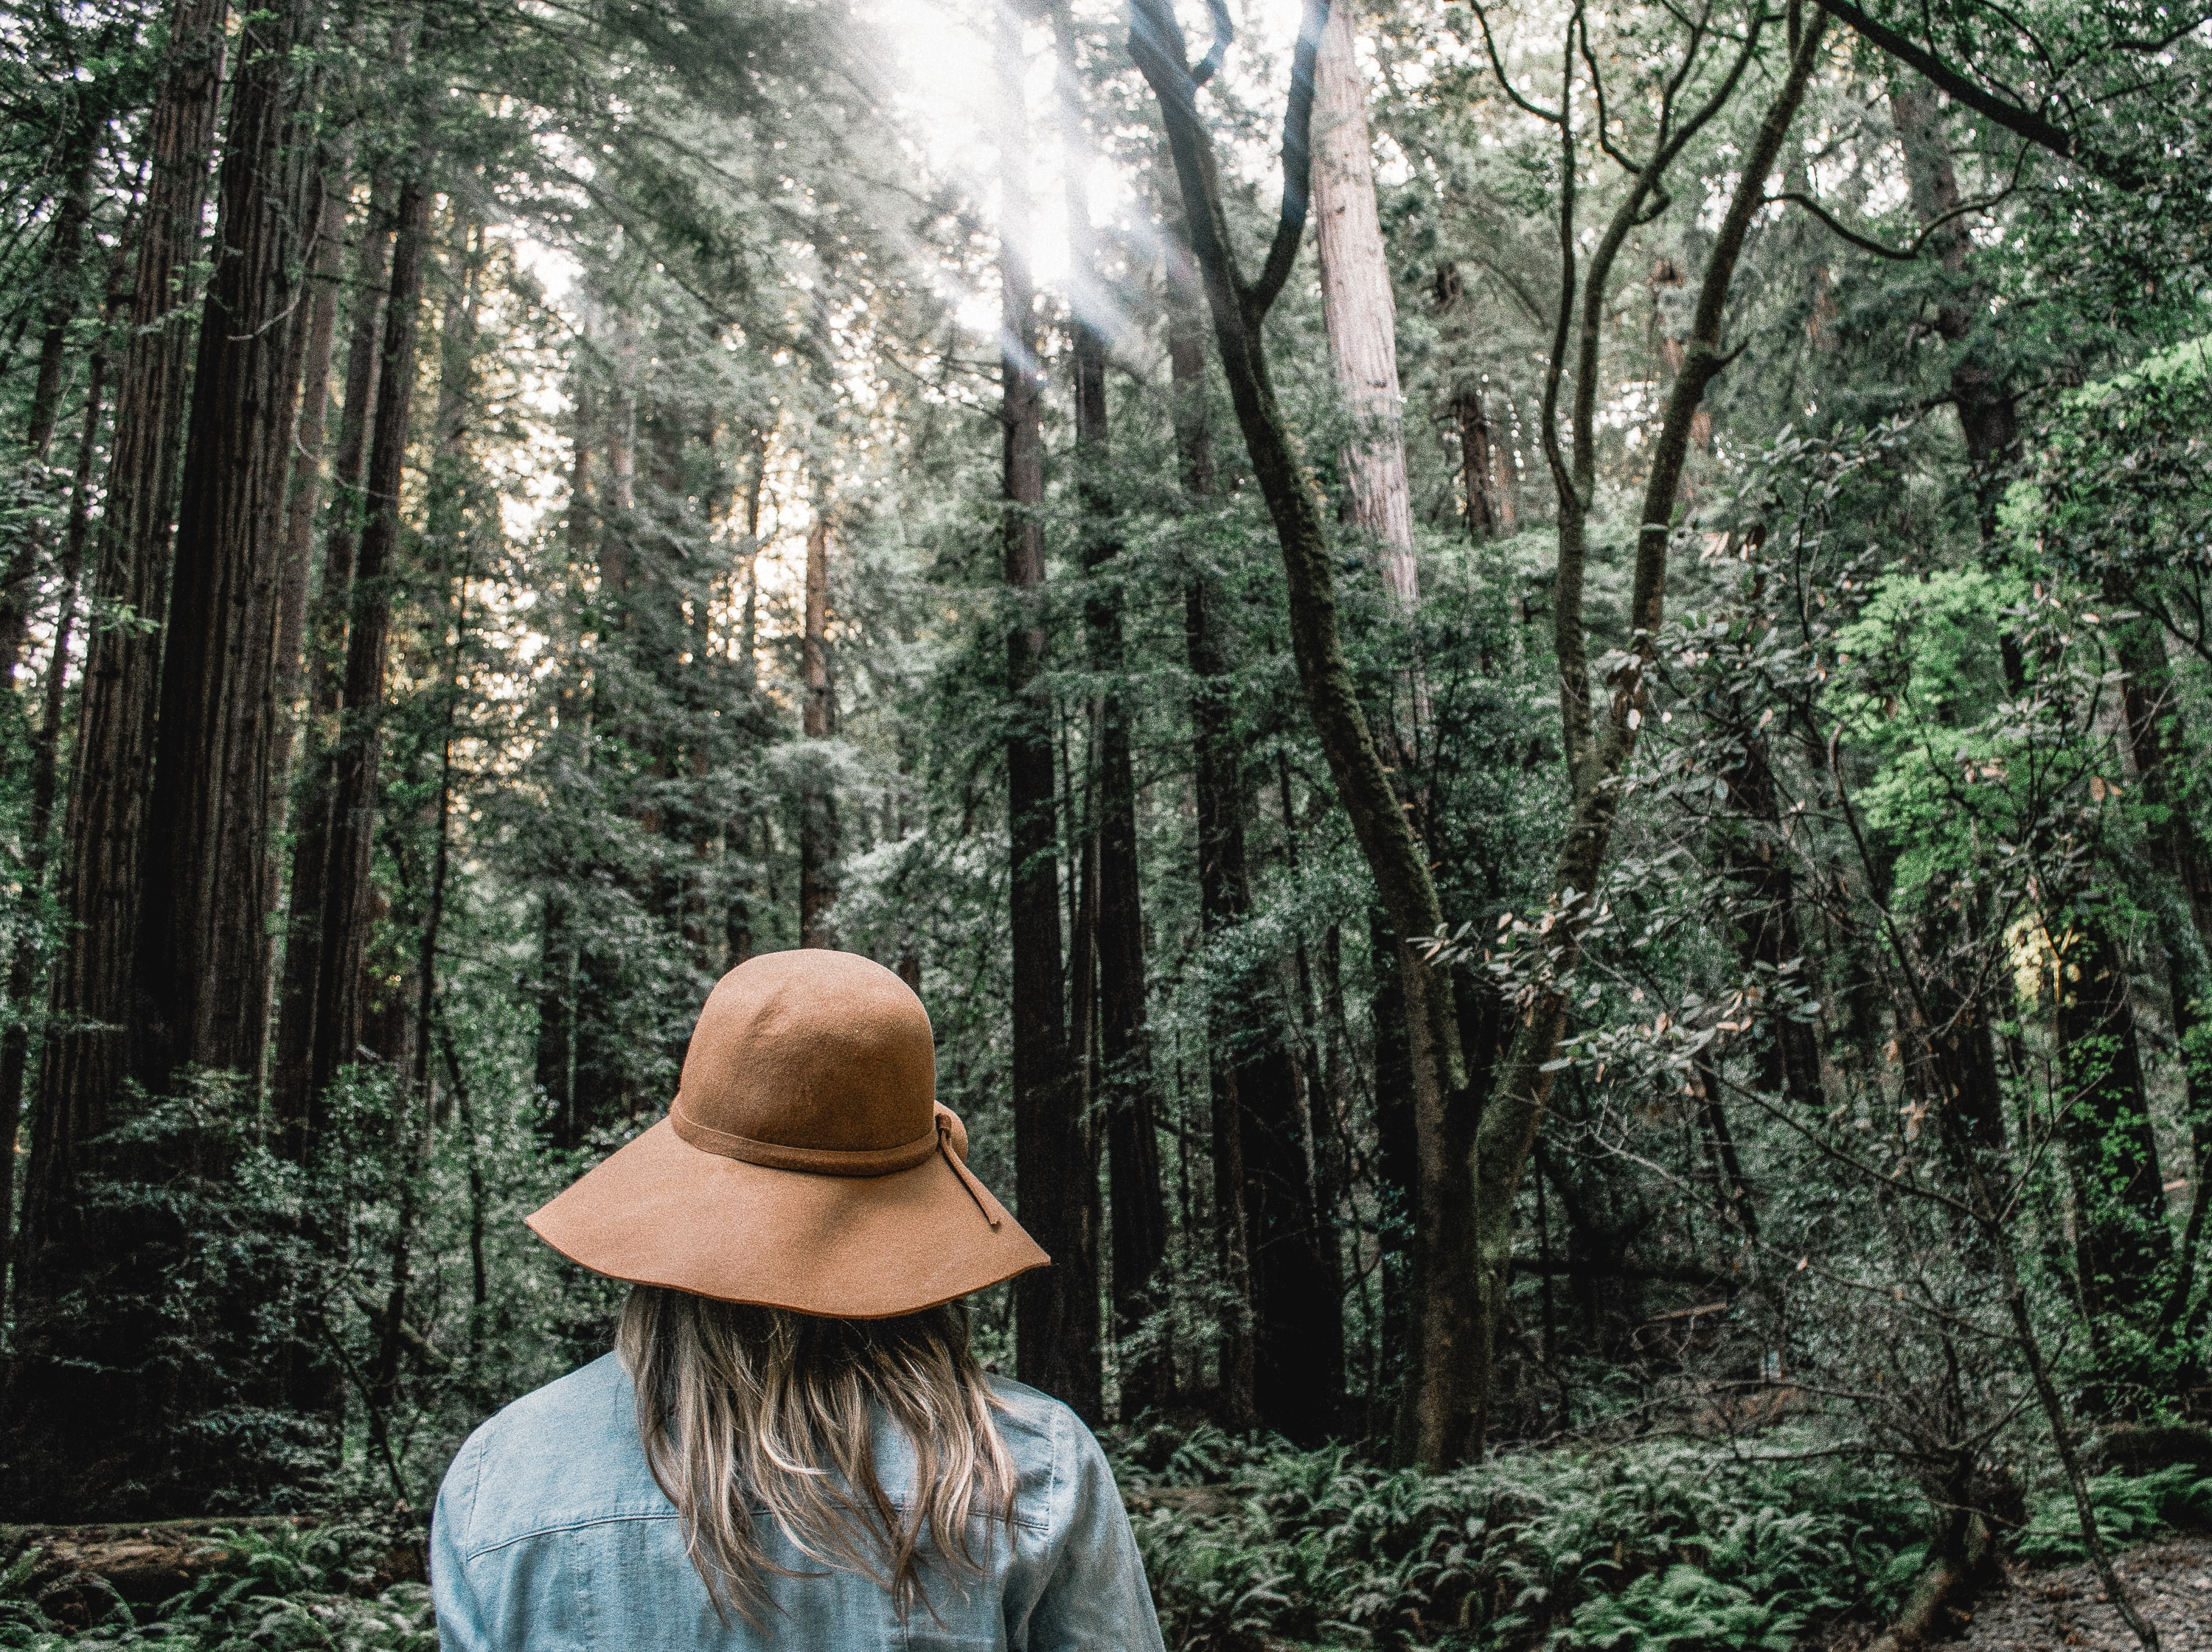 A woman in a hat hiking through a bright forest